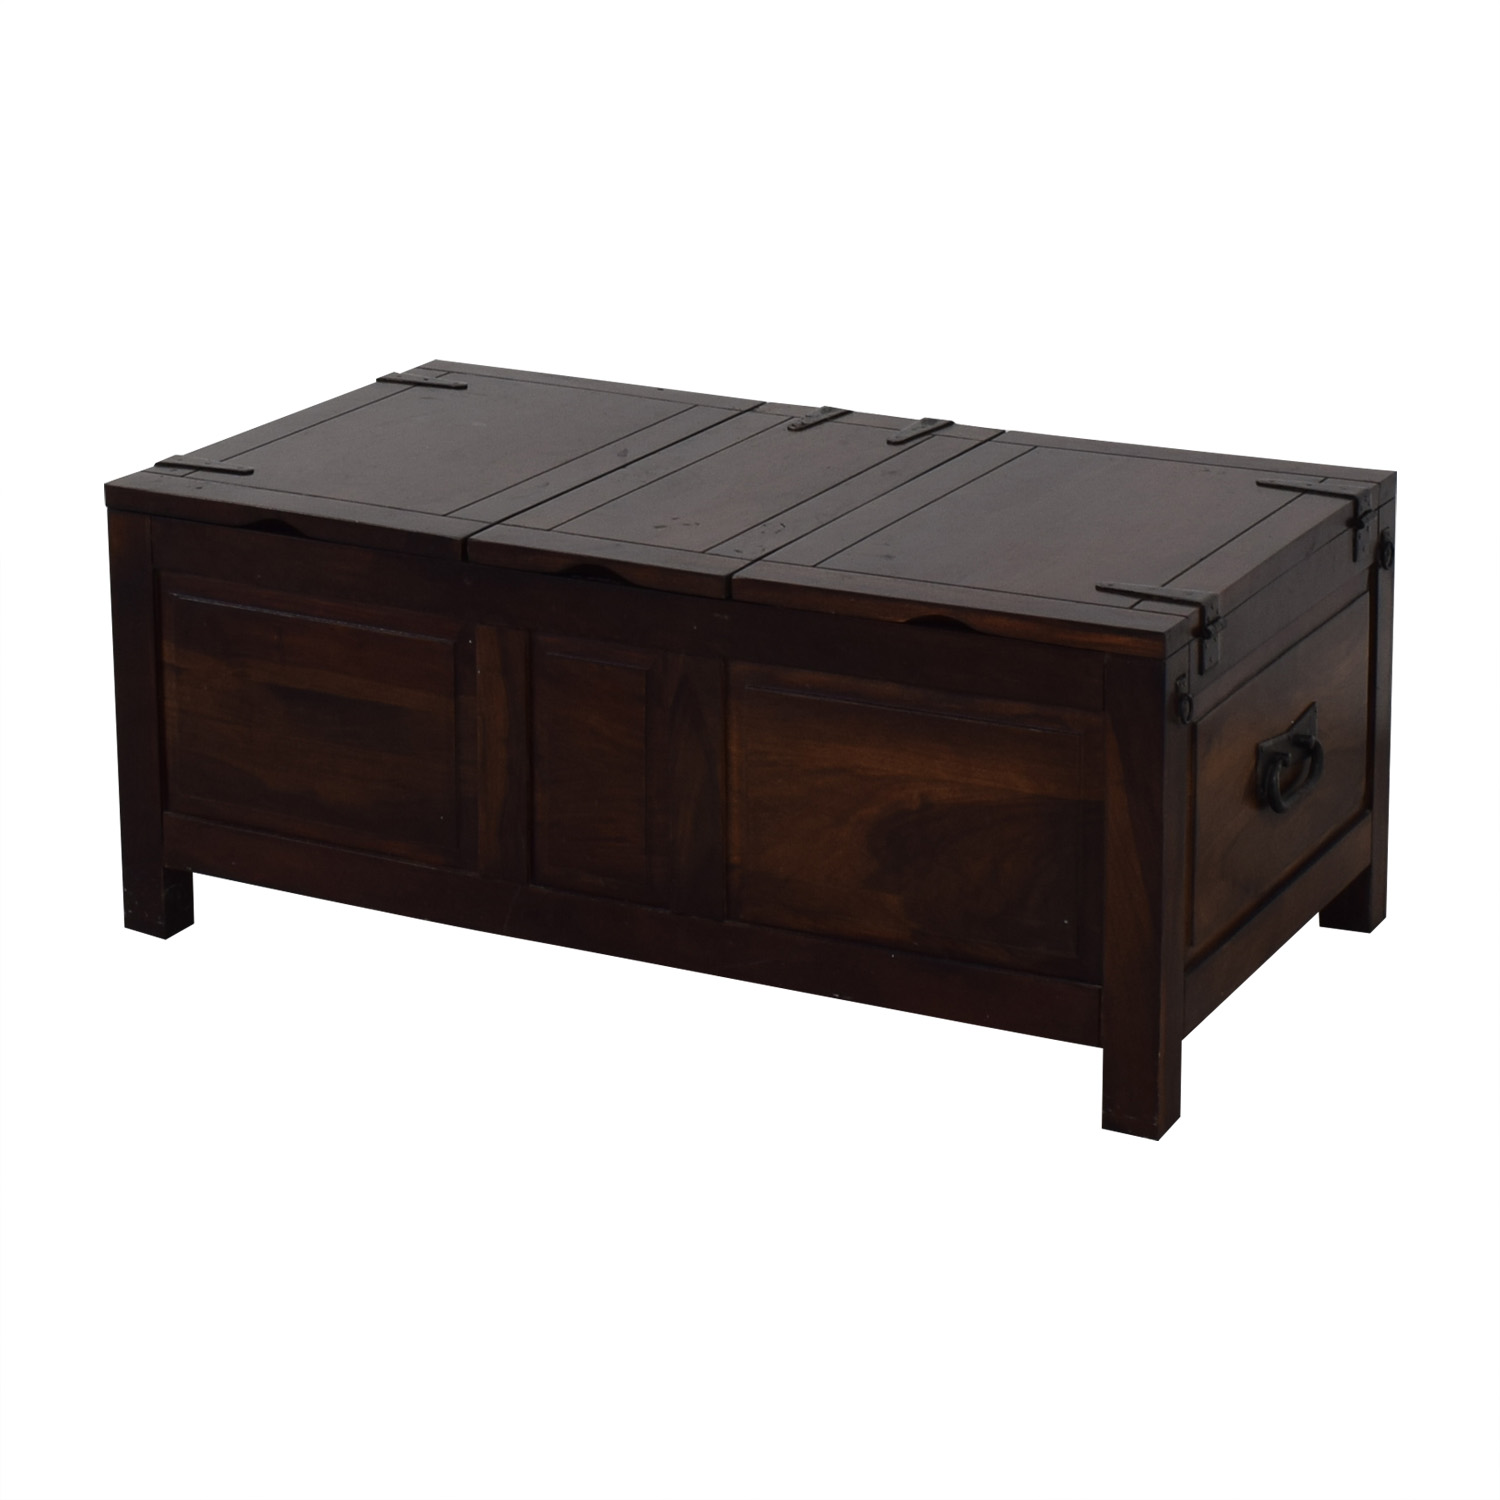 Crate & Barrel Crate & Barrel Coffee Table with Storage price